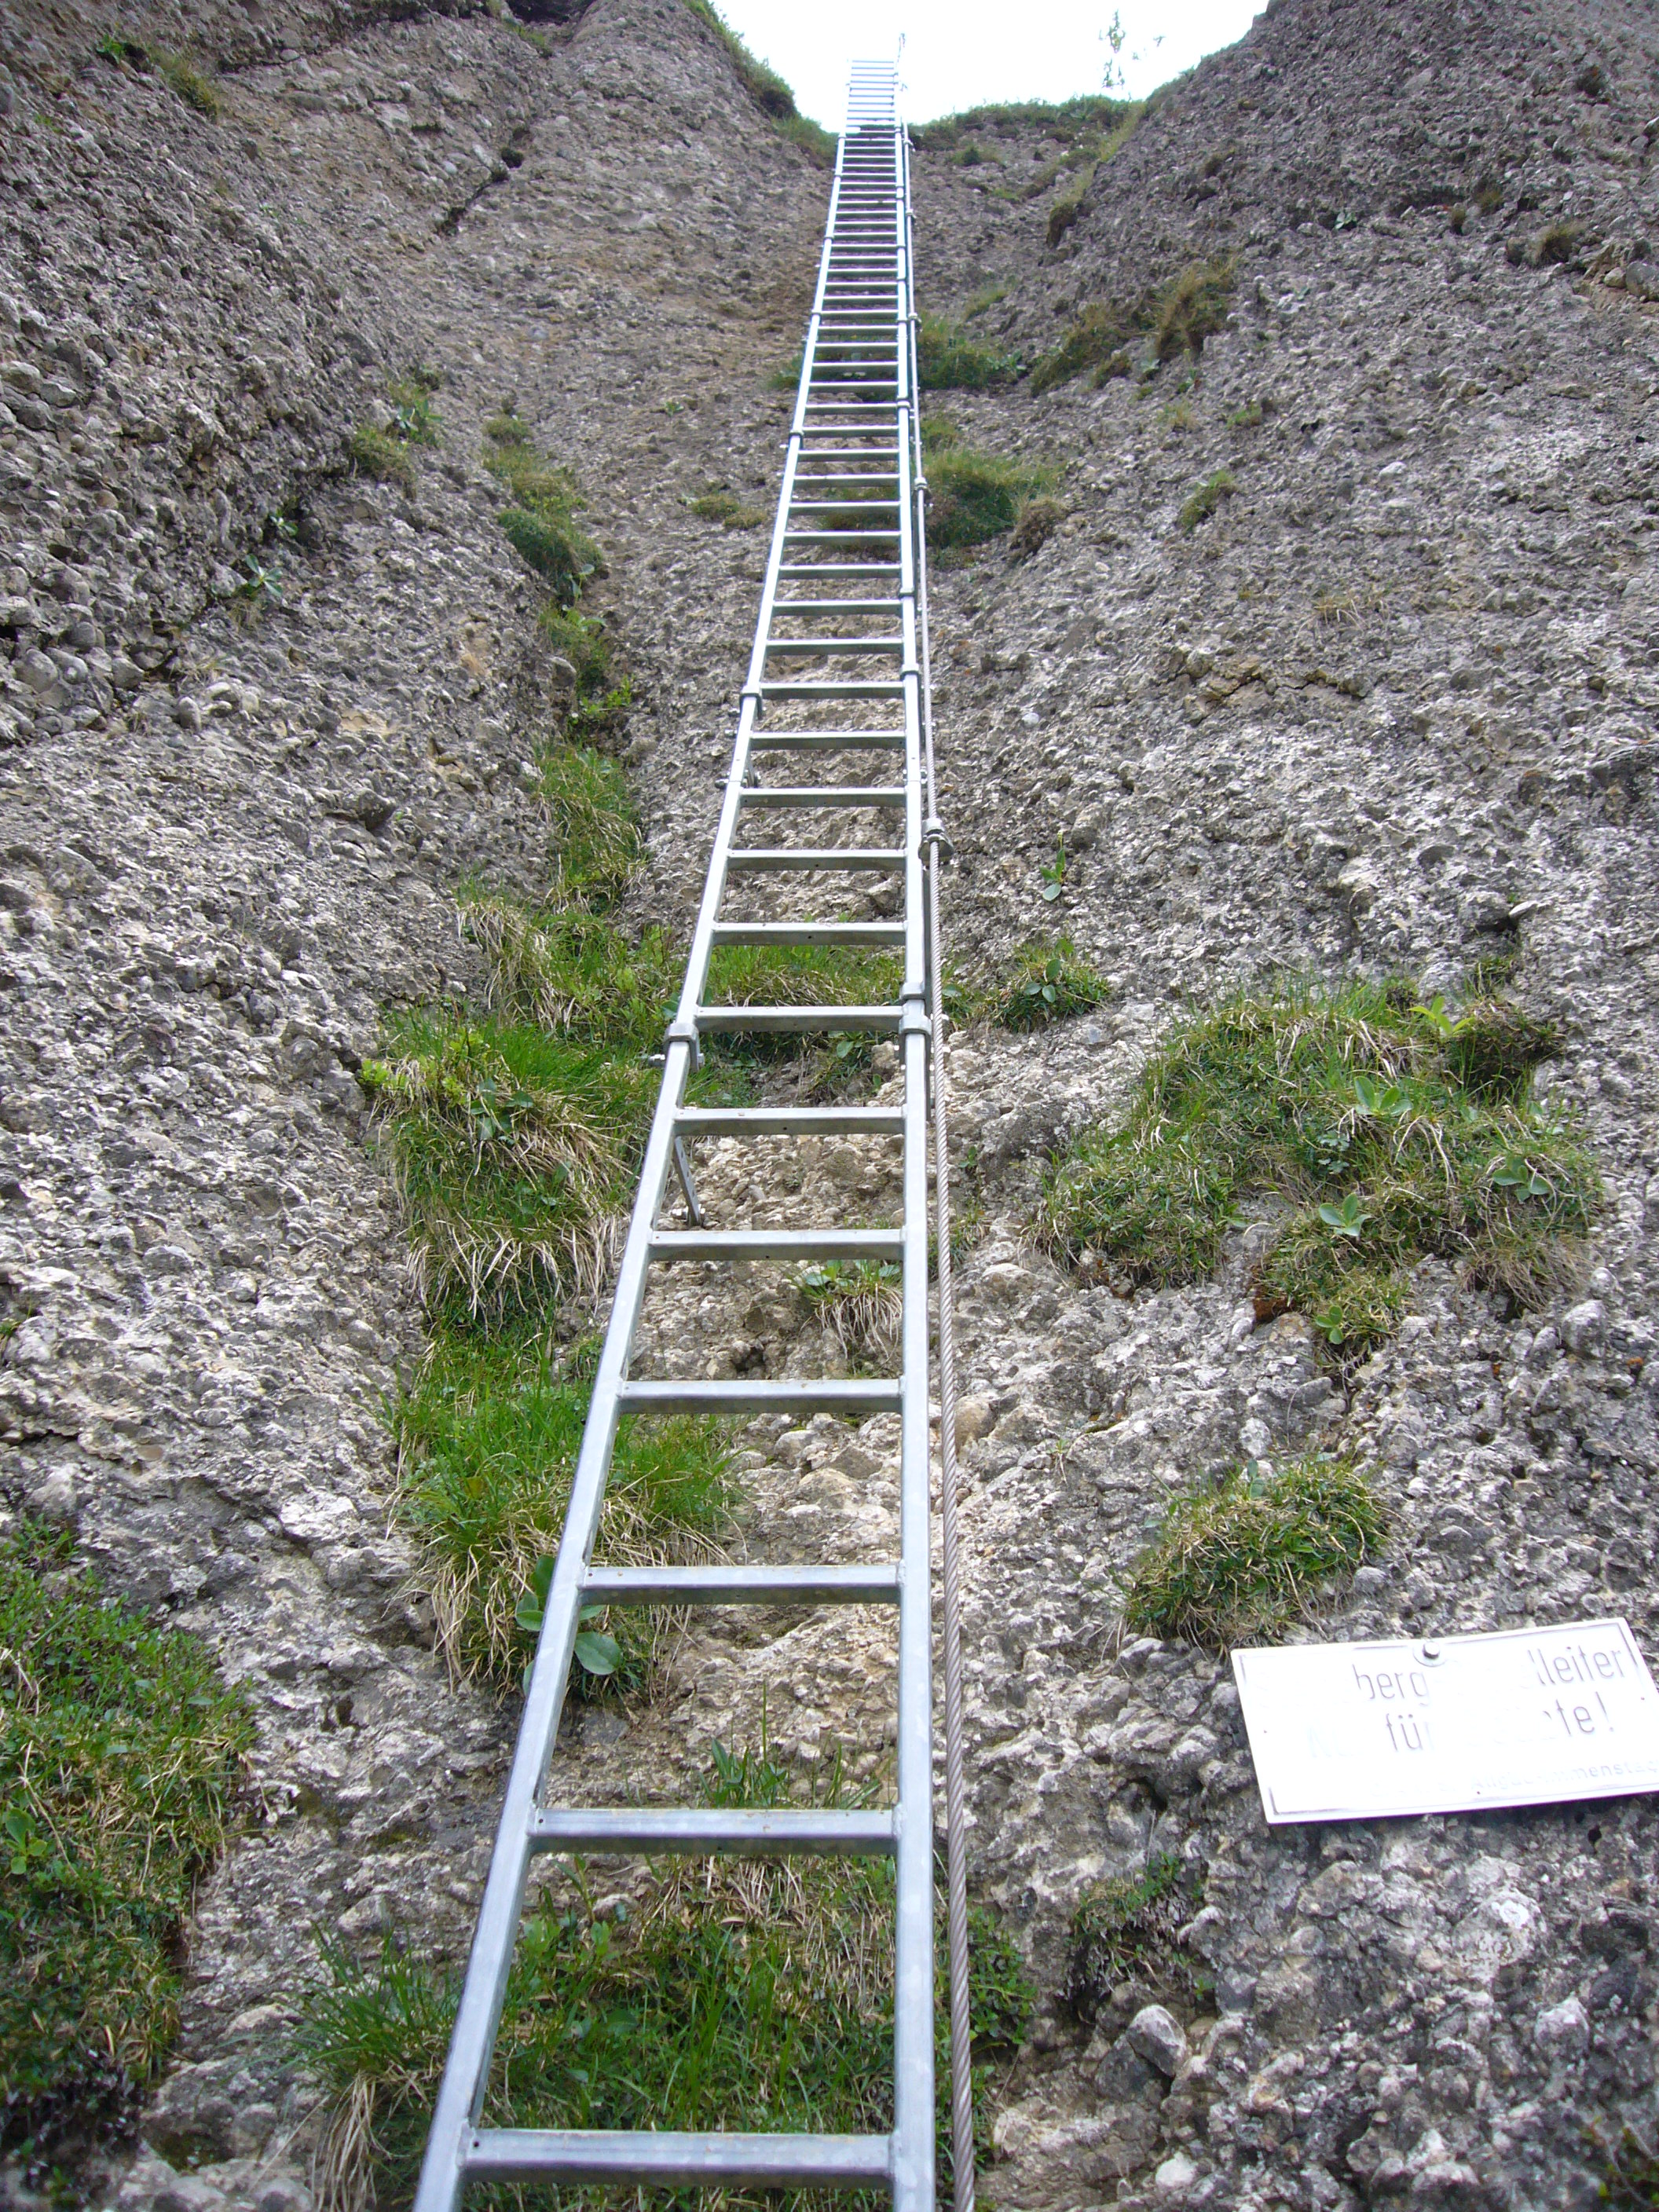 A very, very tall ladder leaning against a cliff face